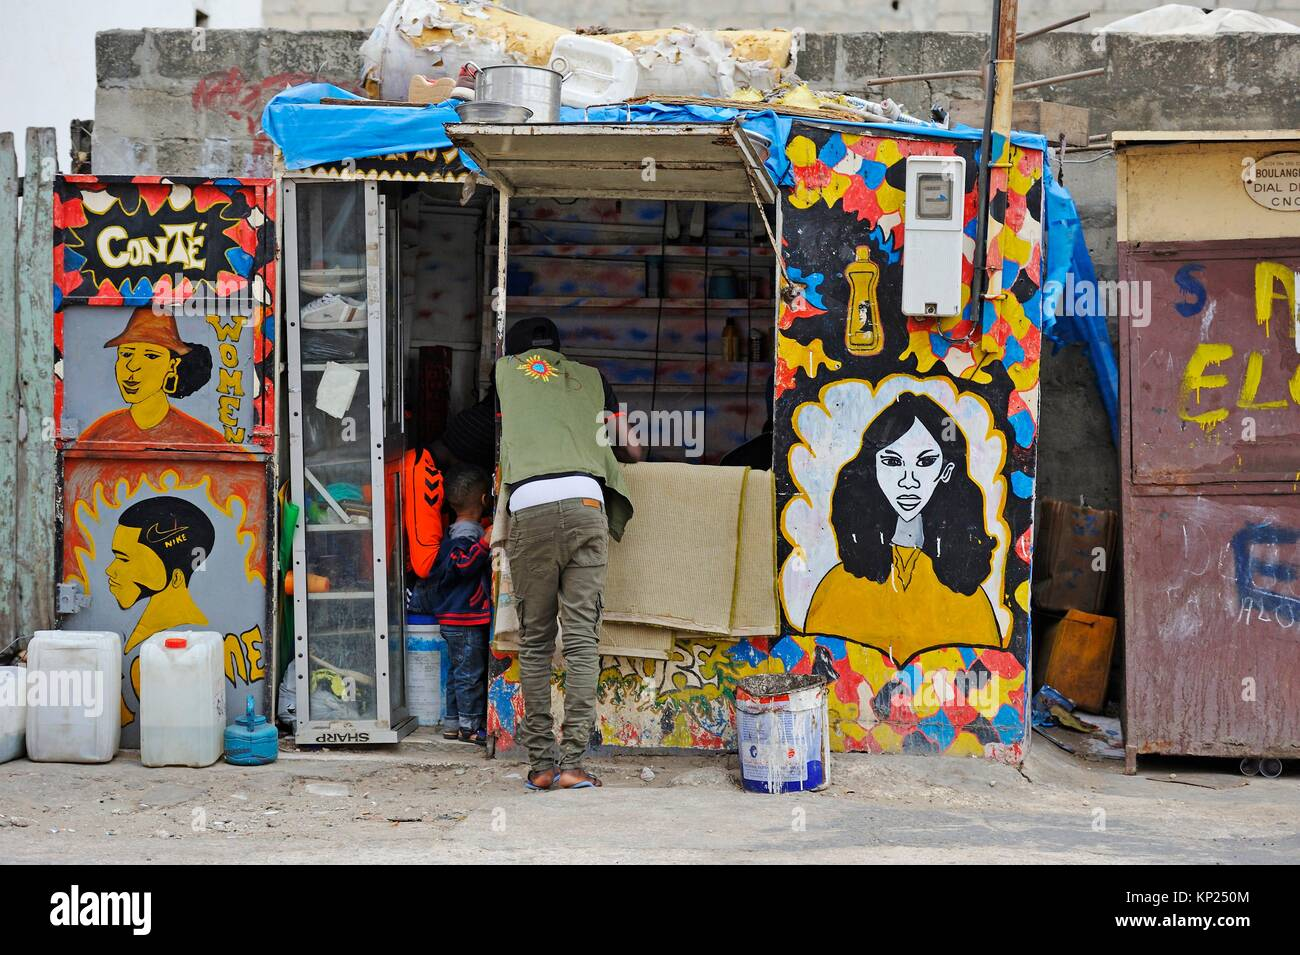 cheap hair salon, Medina district, Dakar, Senegal, West Africa. - Stock Image